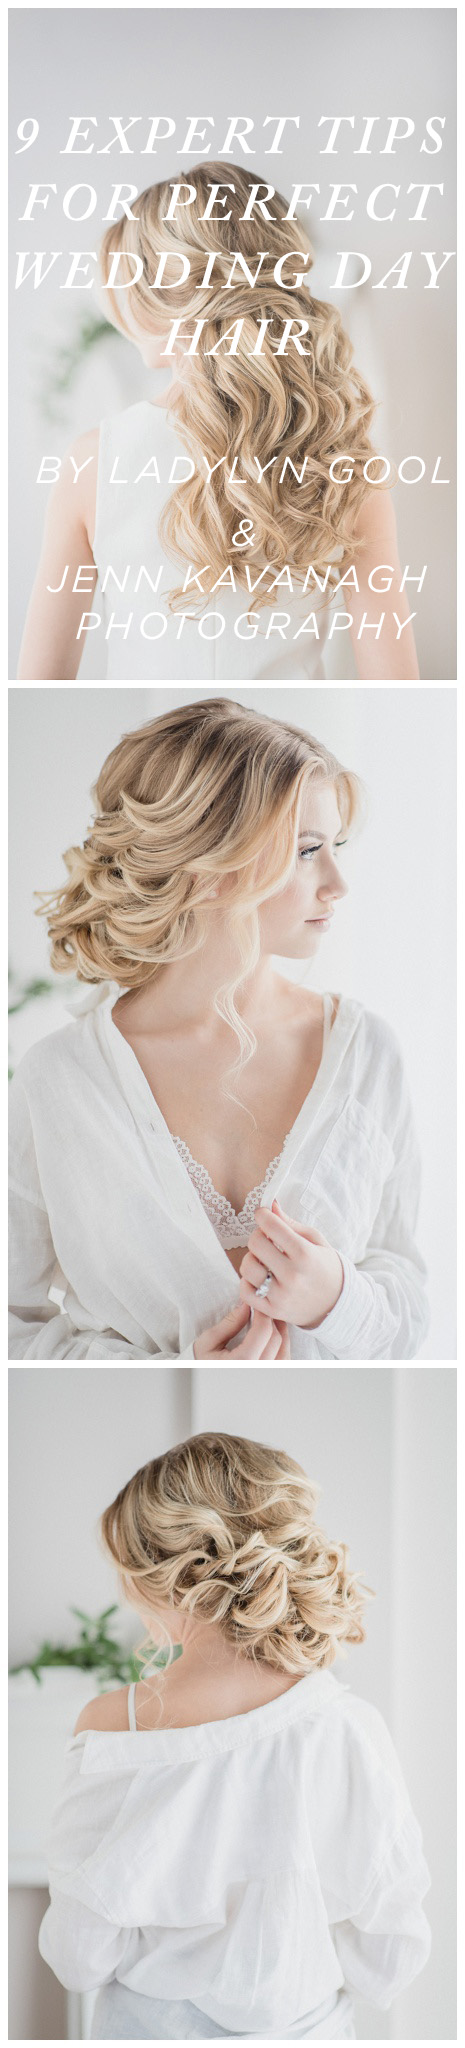 JennKavanagh-PerfectWeddingDayHair